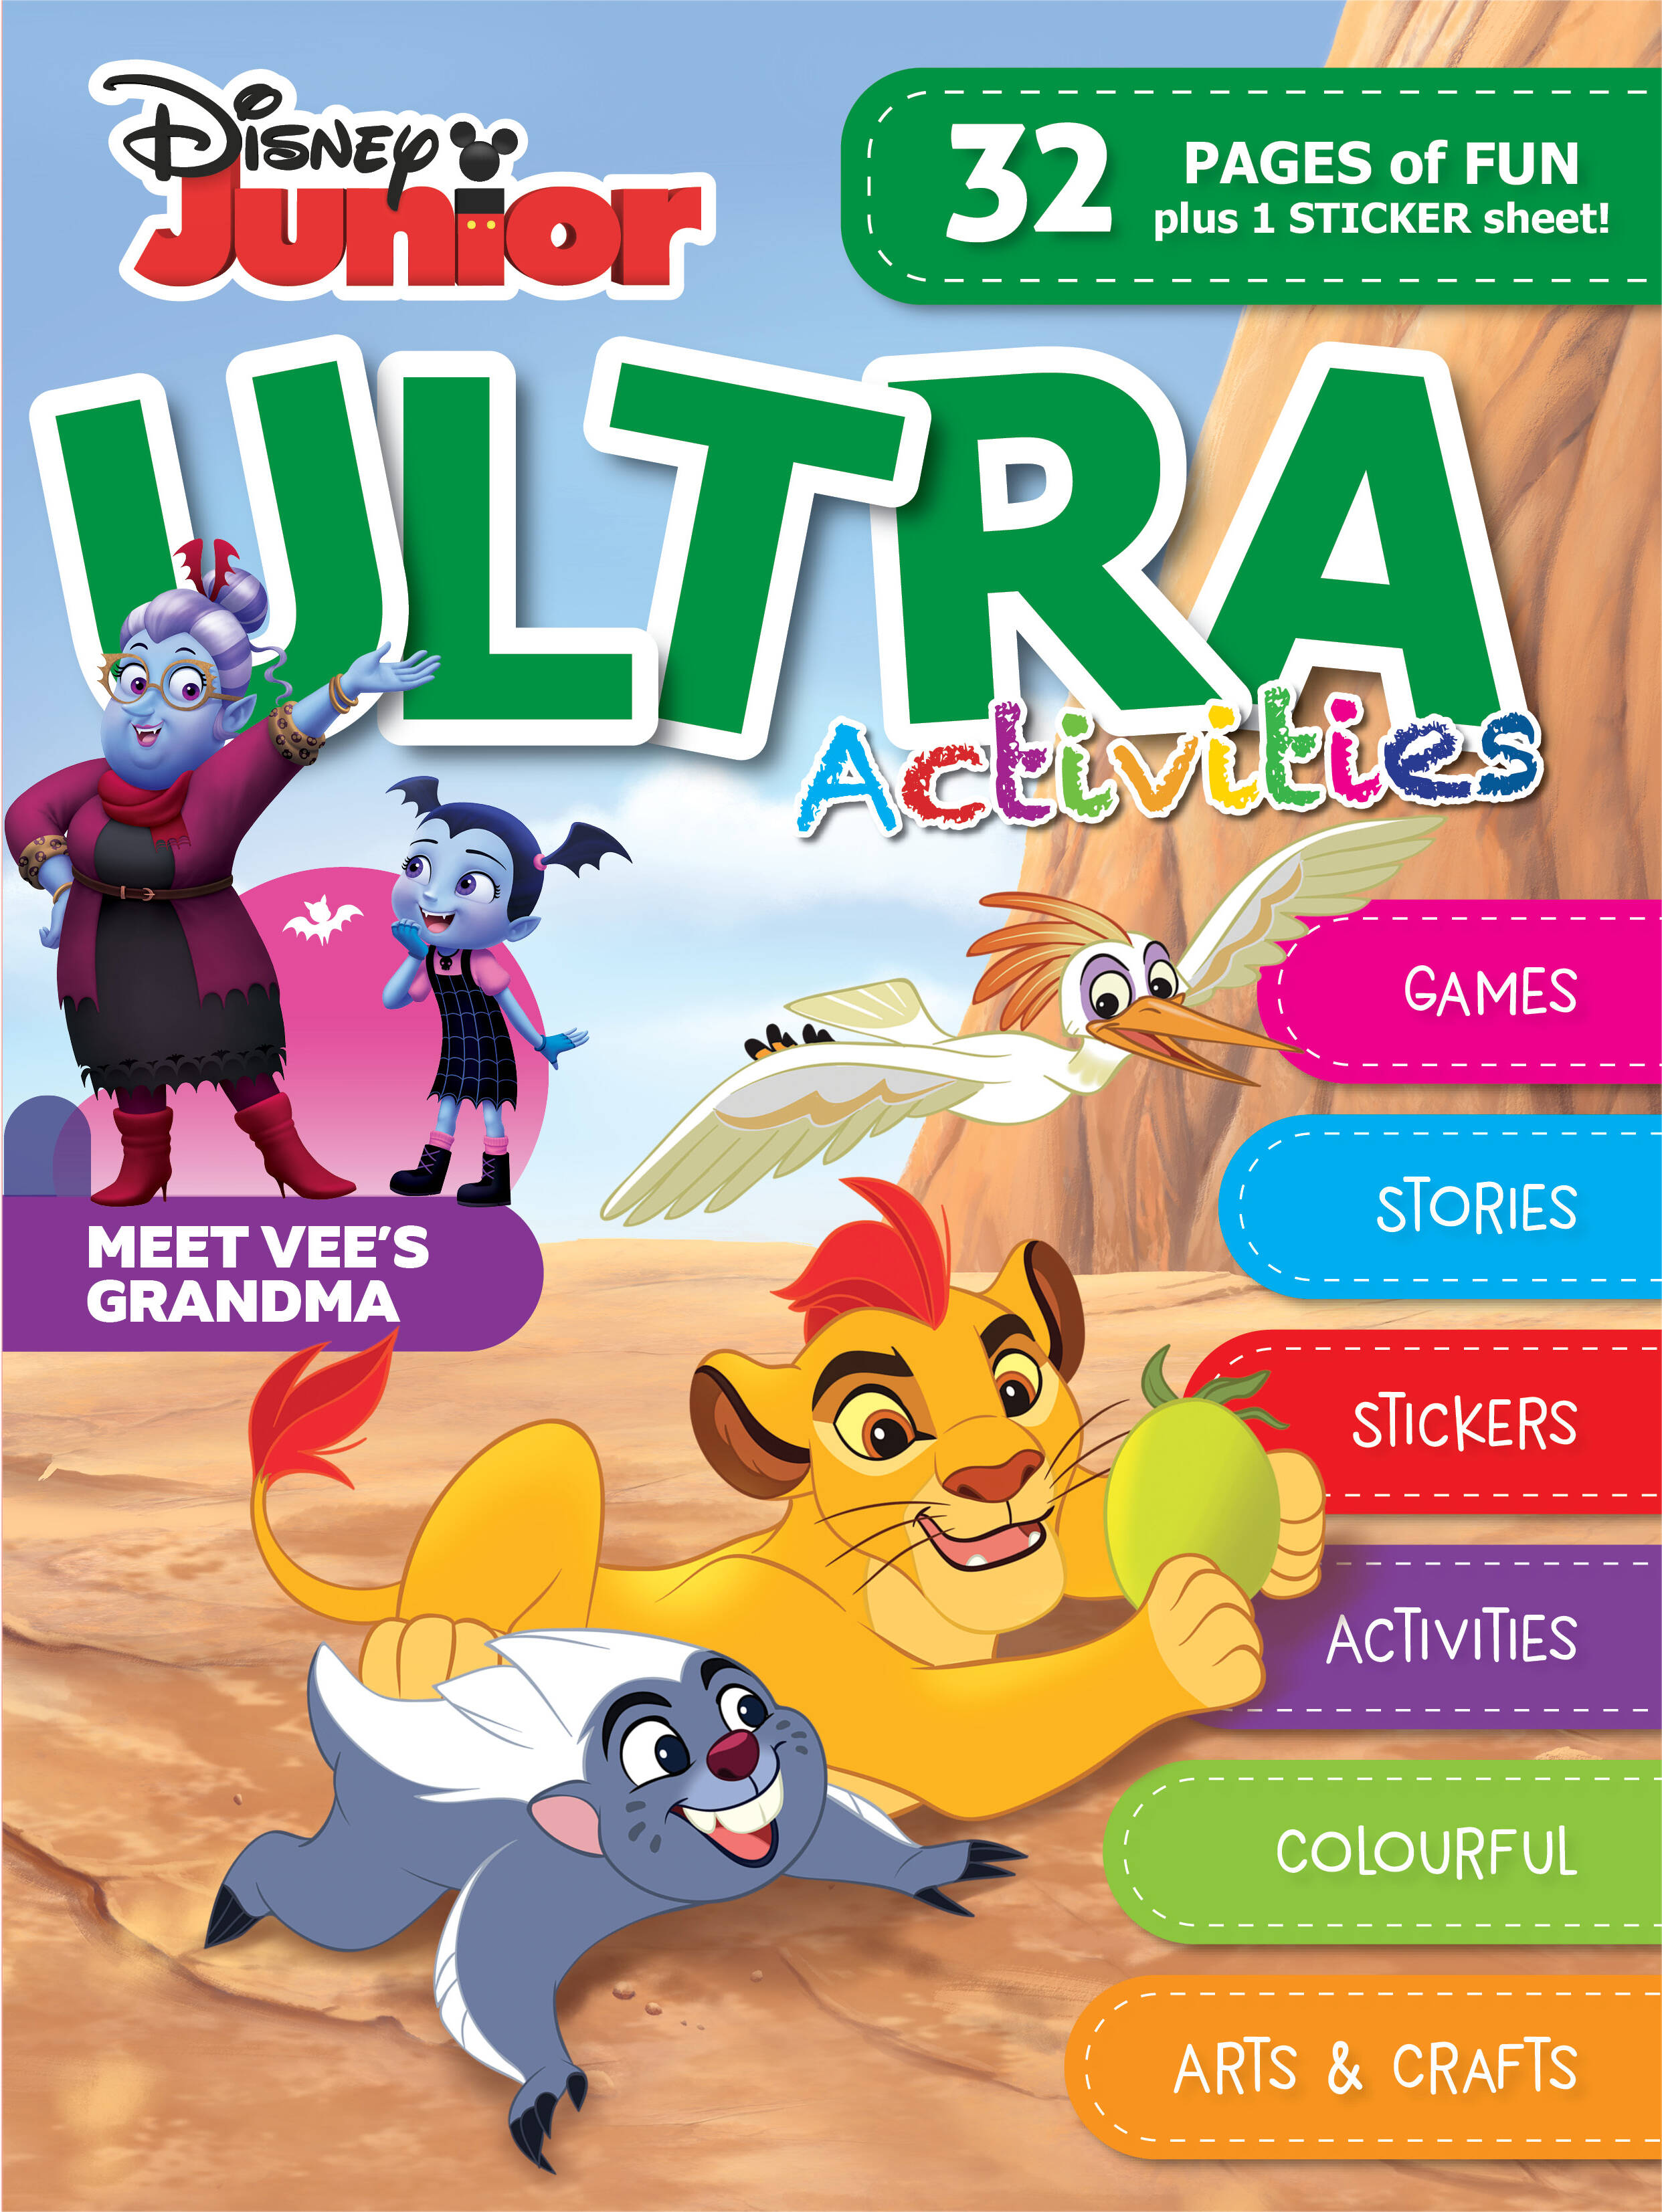 Disney Junior - Ultra Activities